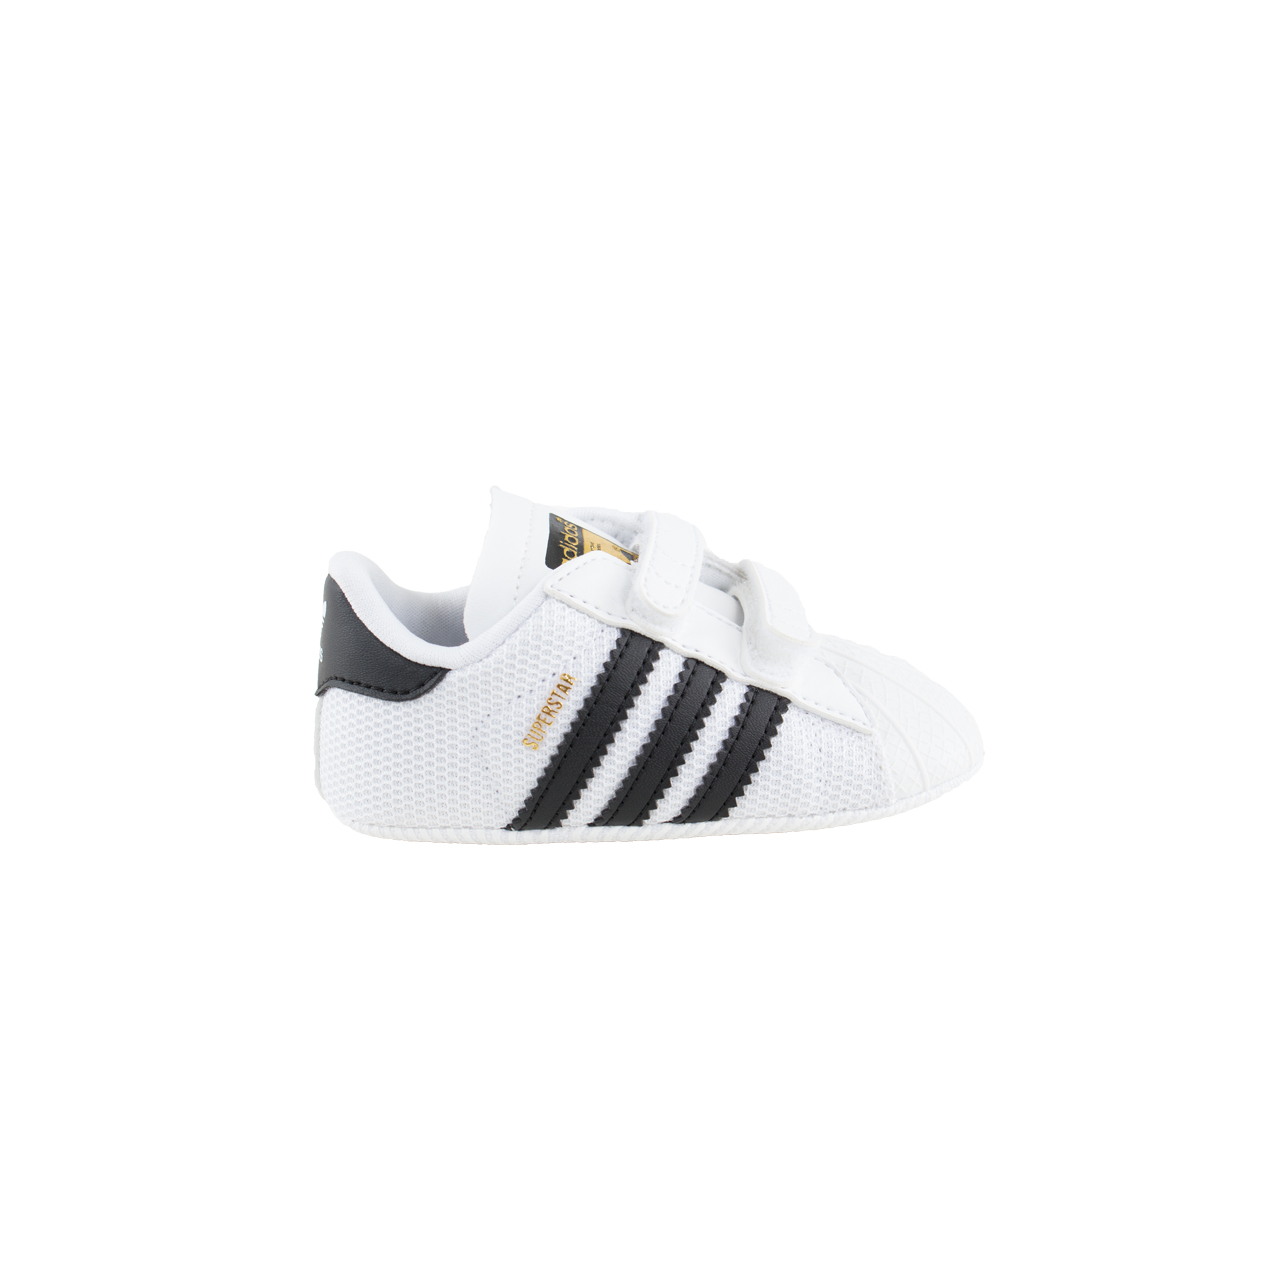 94c444f34d0 ADIDAS Superstar Crib Sneakers Baby – Collab Sneakers